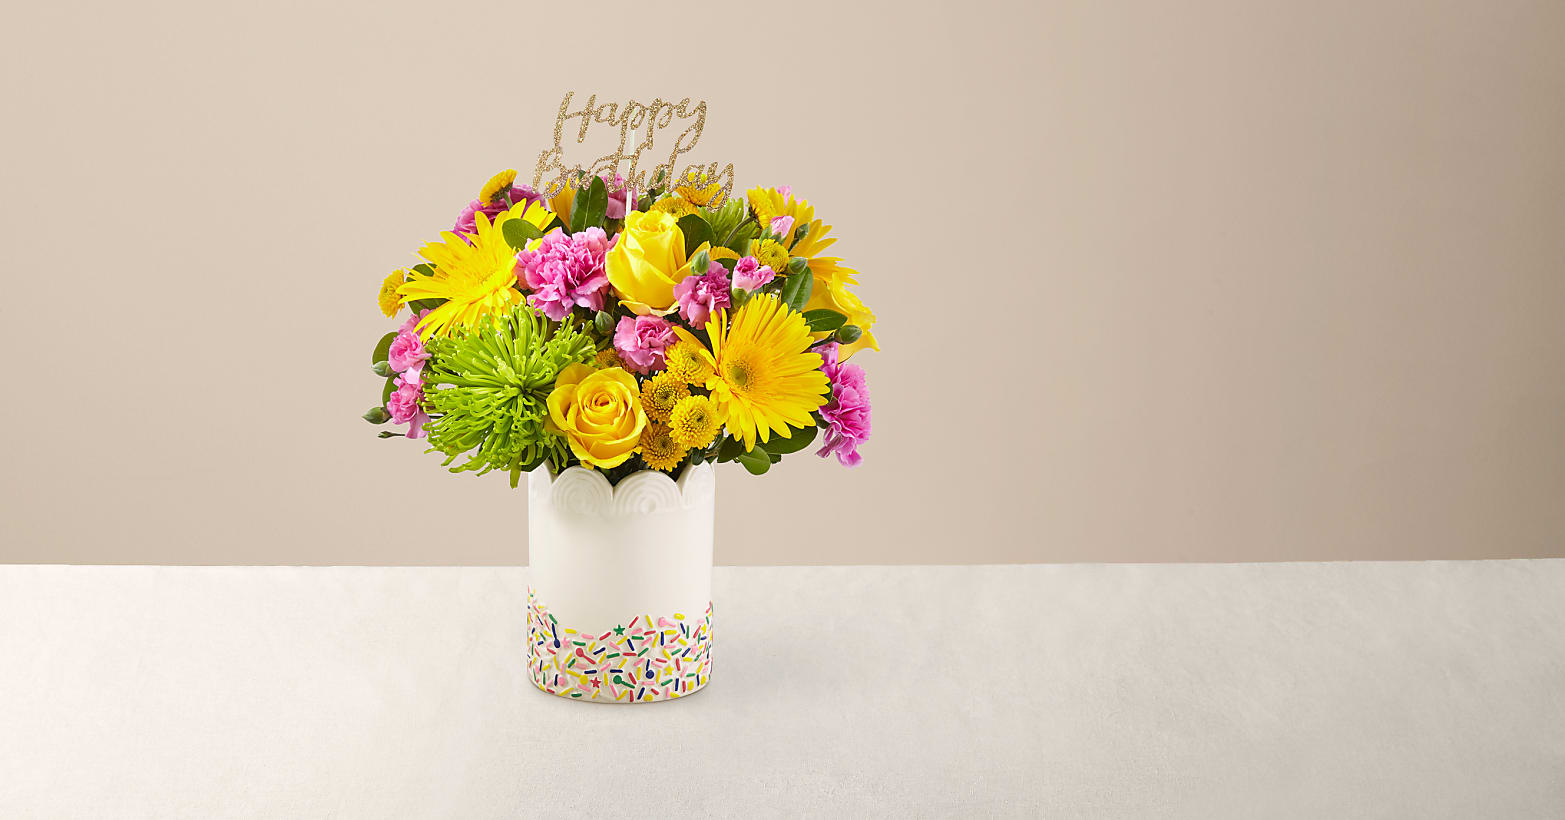 Birthday Sprinkles Bouquet - Image 1 Of 5